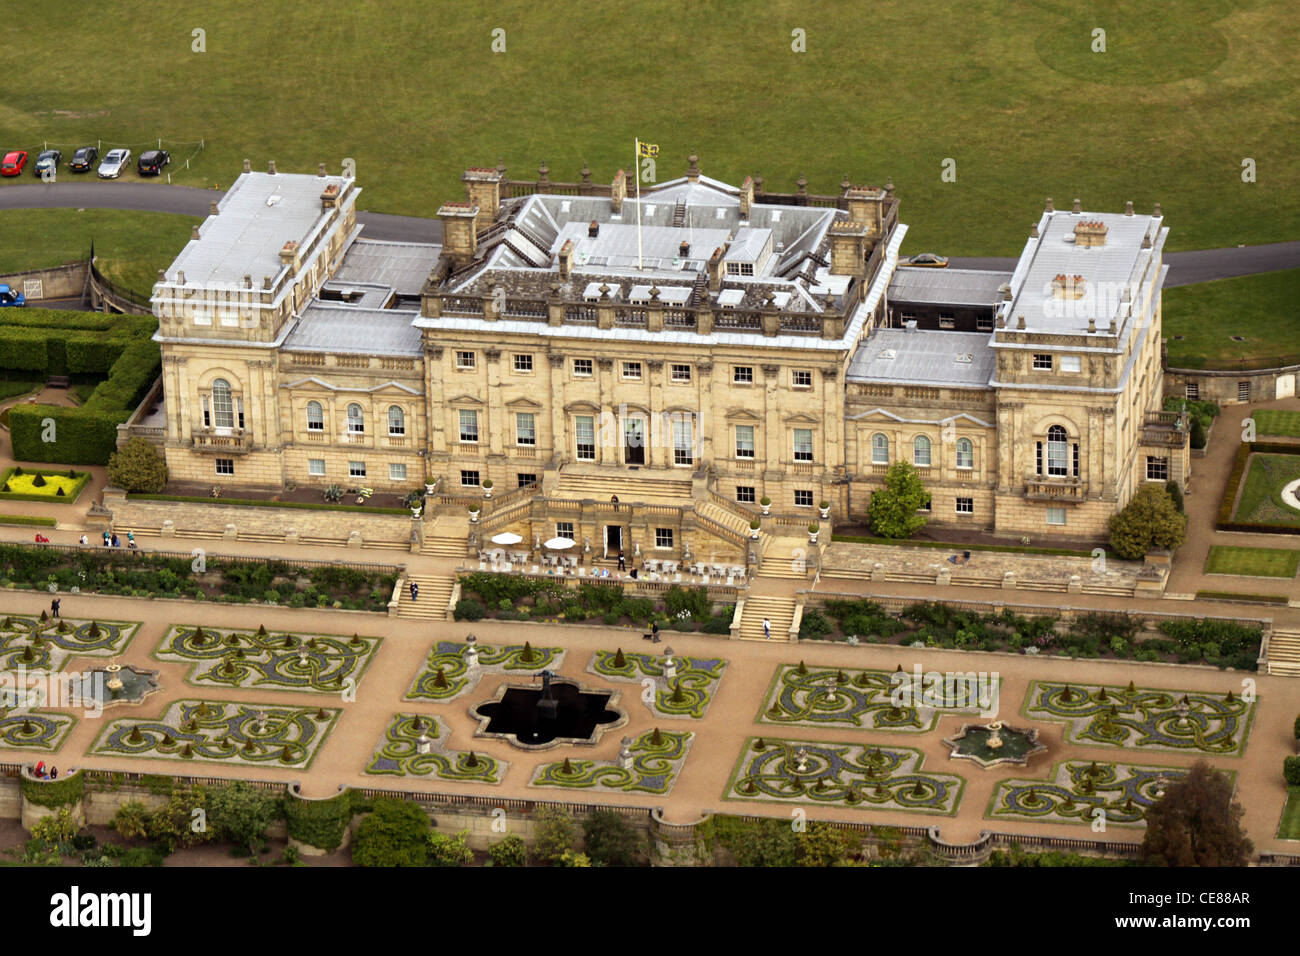 Aerial view of Harewood House stately home, north of Leeds - Stock Image